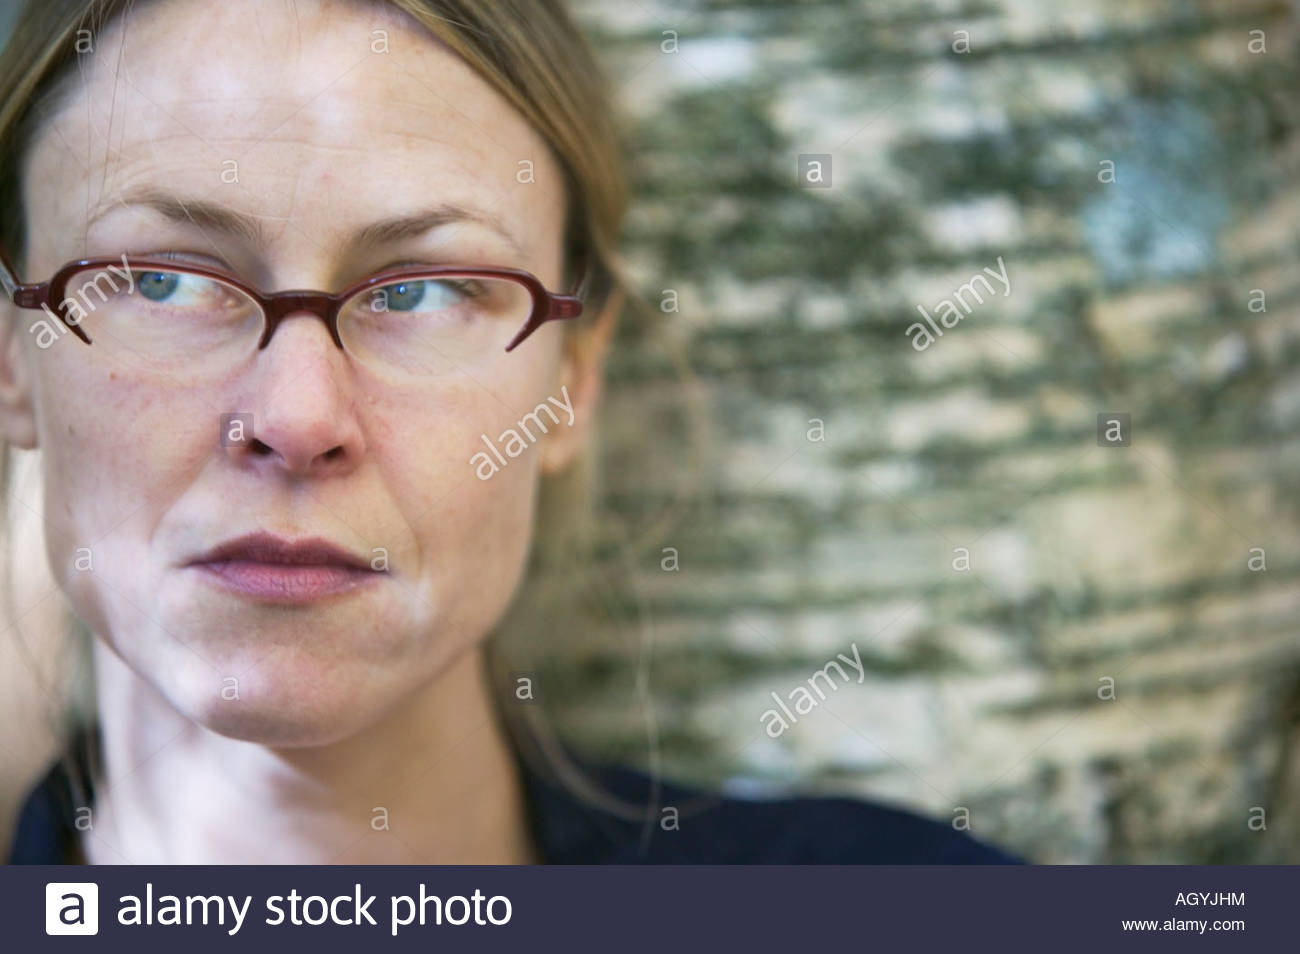 Woman in eyeglasses - Stock Image